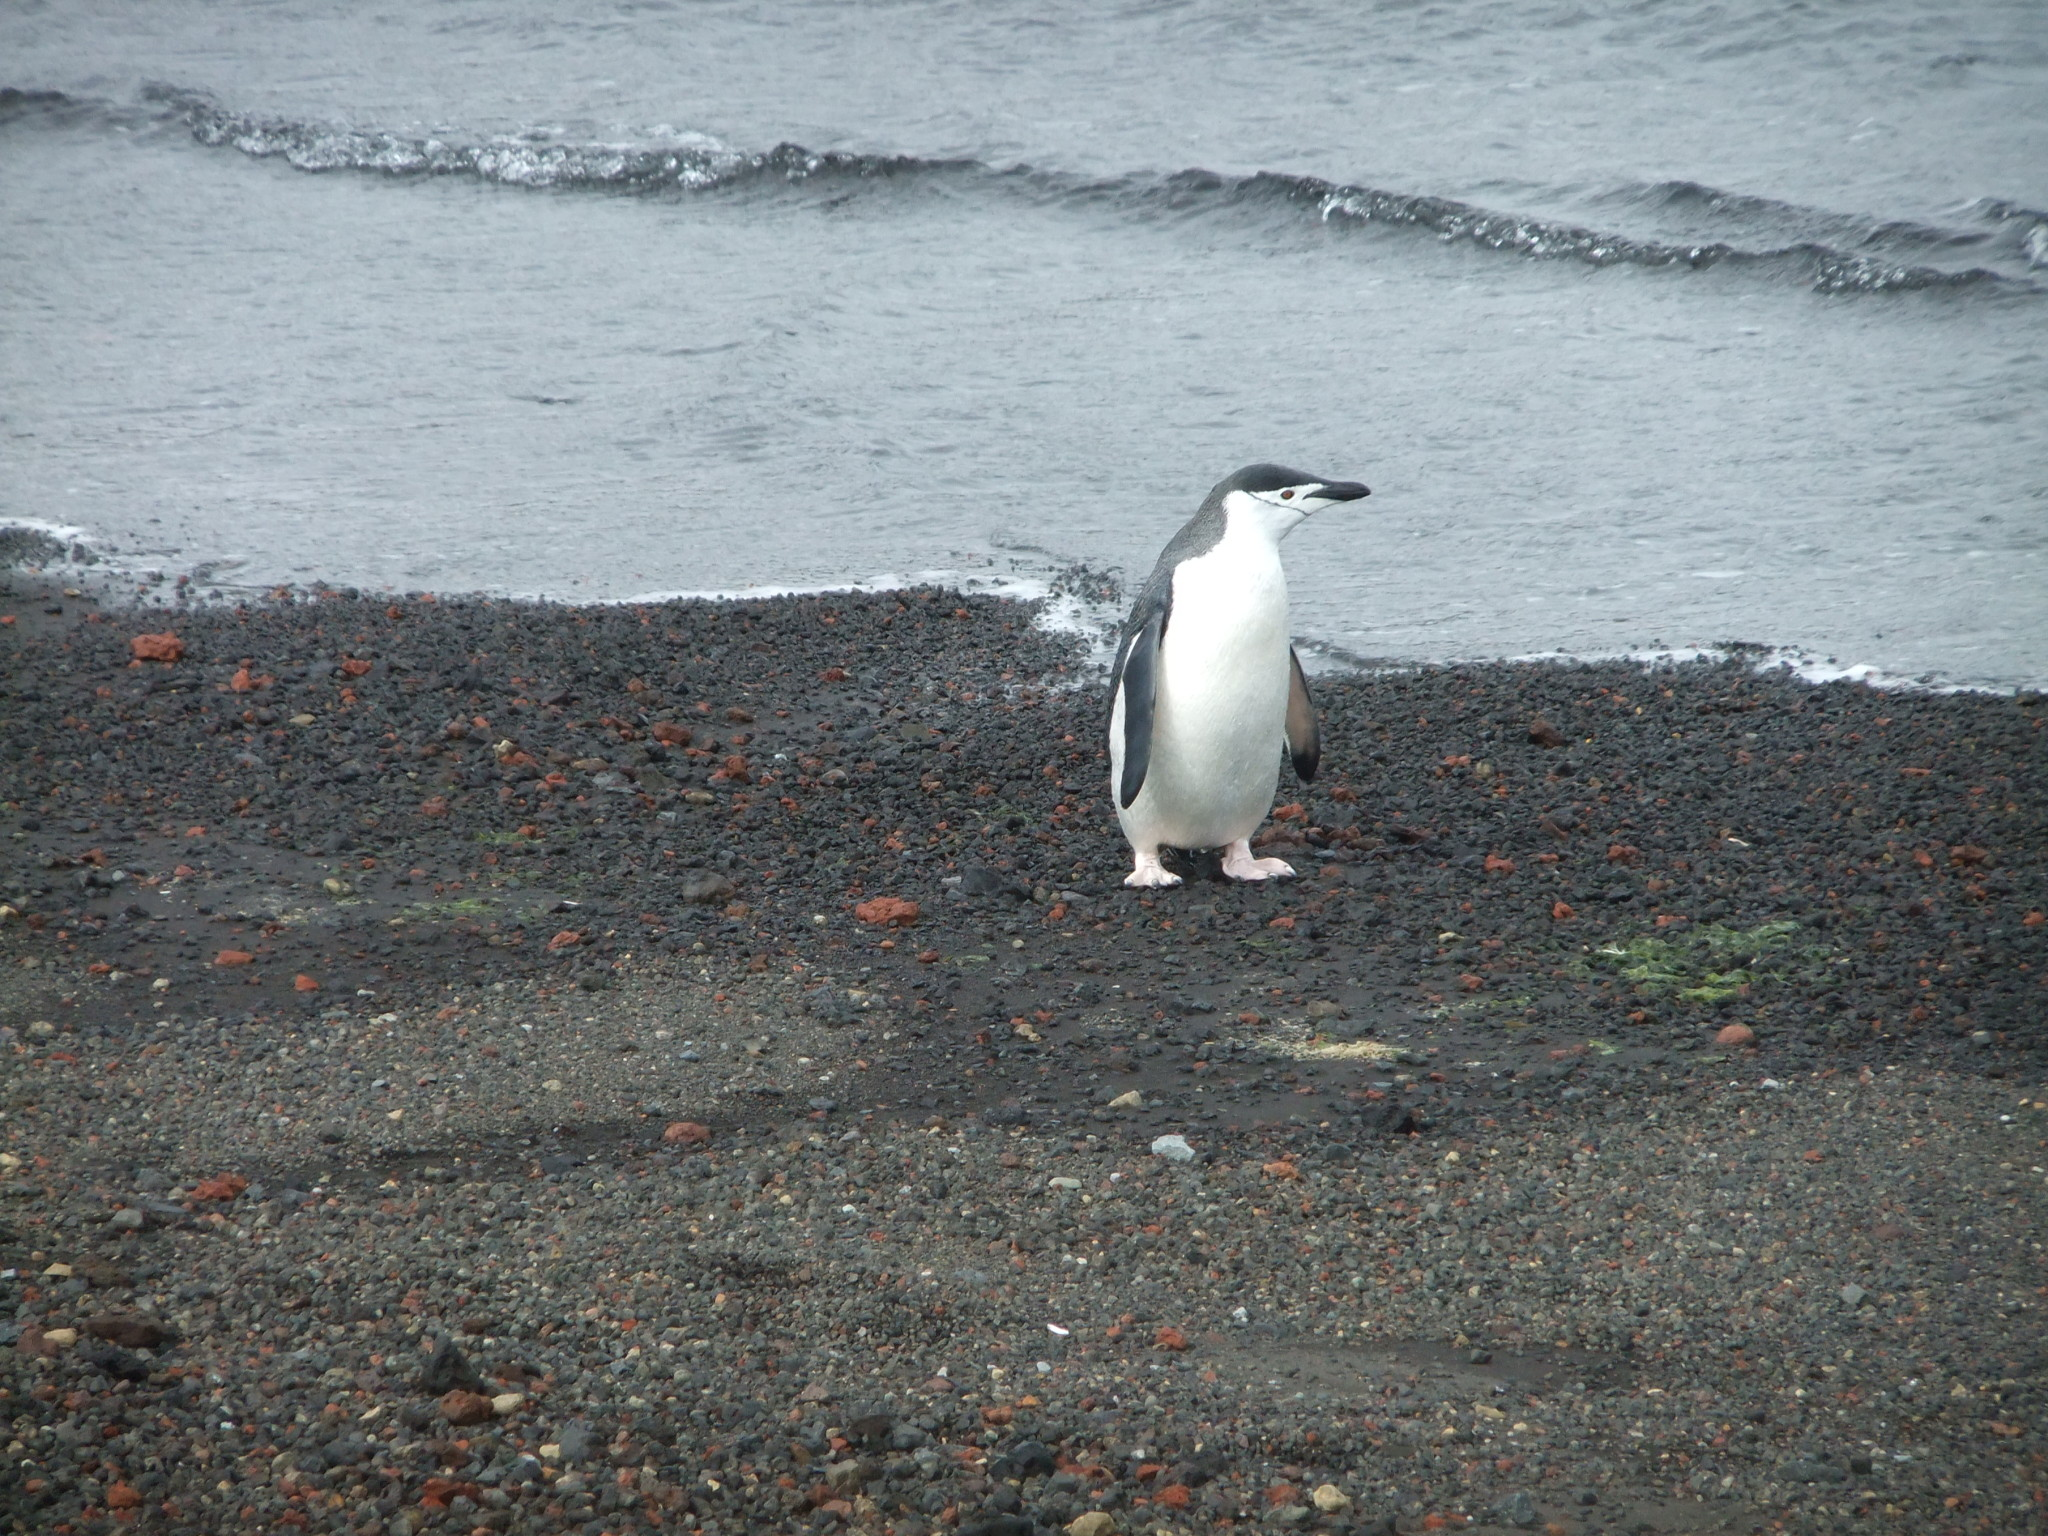 On Antarctica Naked and Other Stories